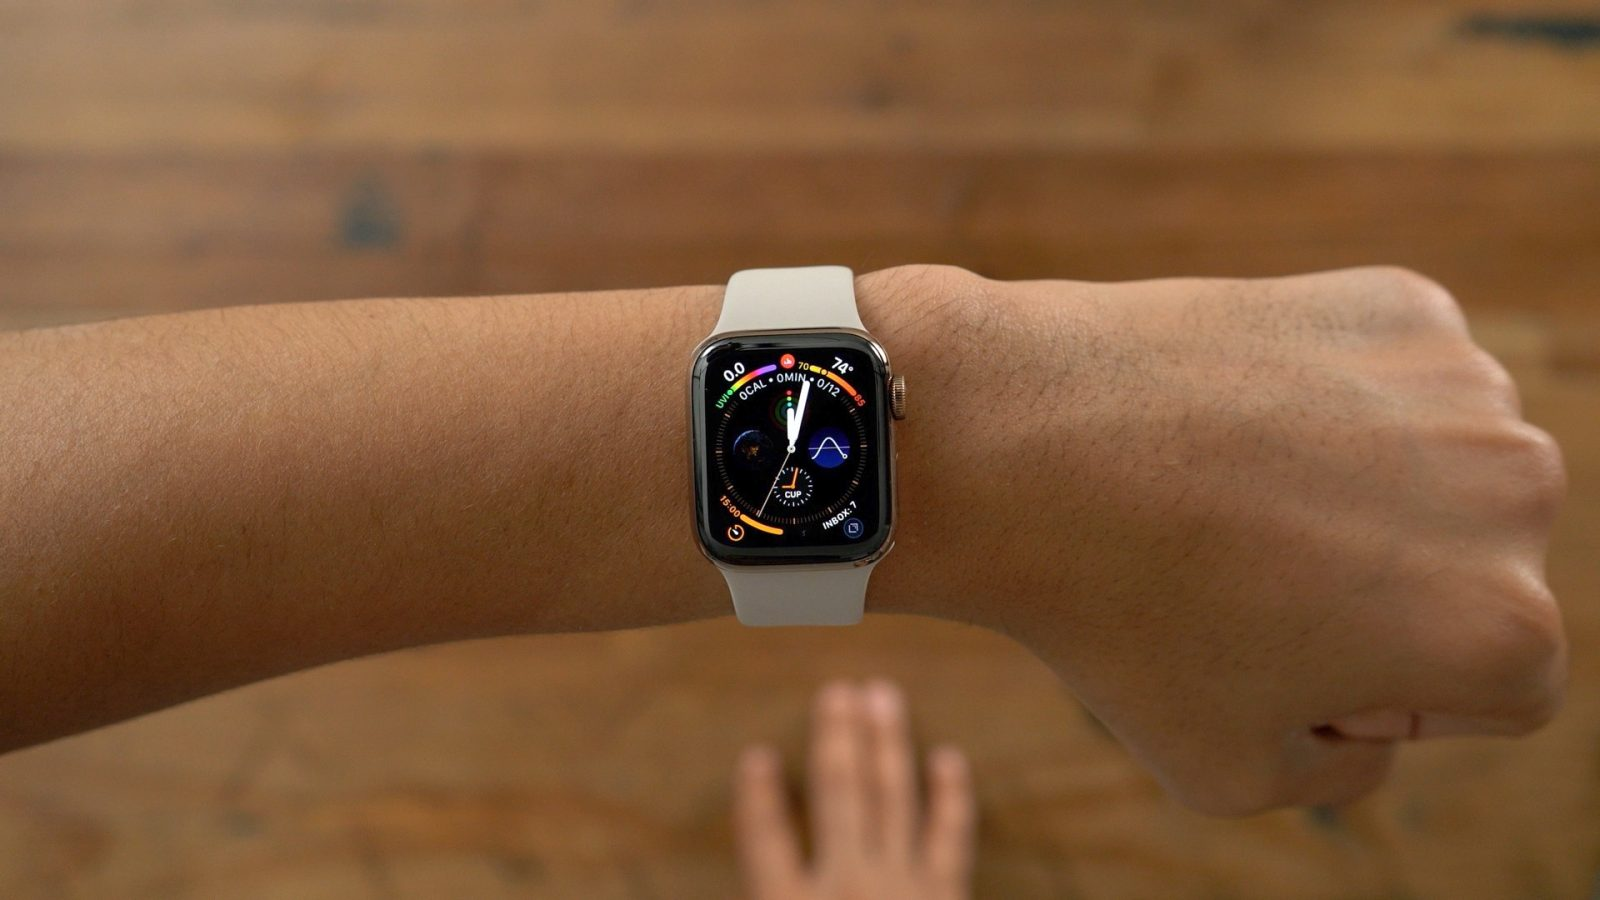 Apple teams up with Eli Lilly to study how iPhone and Apple Watch can help detect dementia